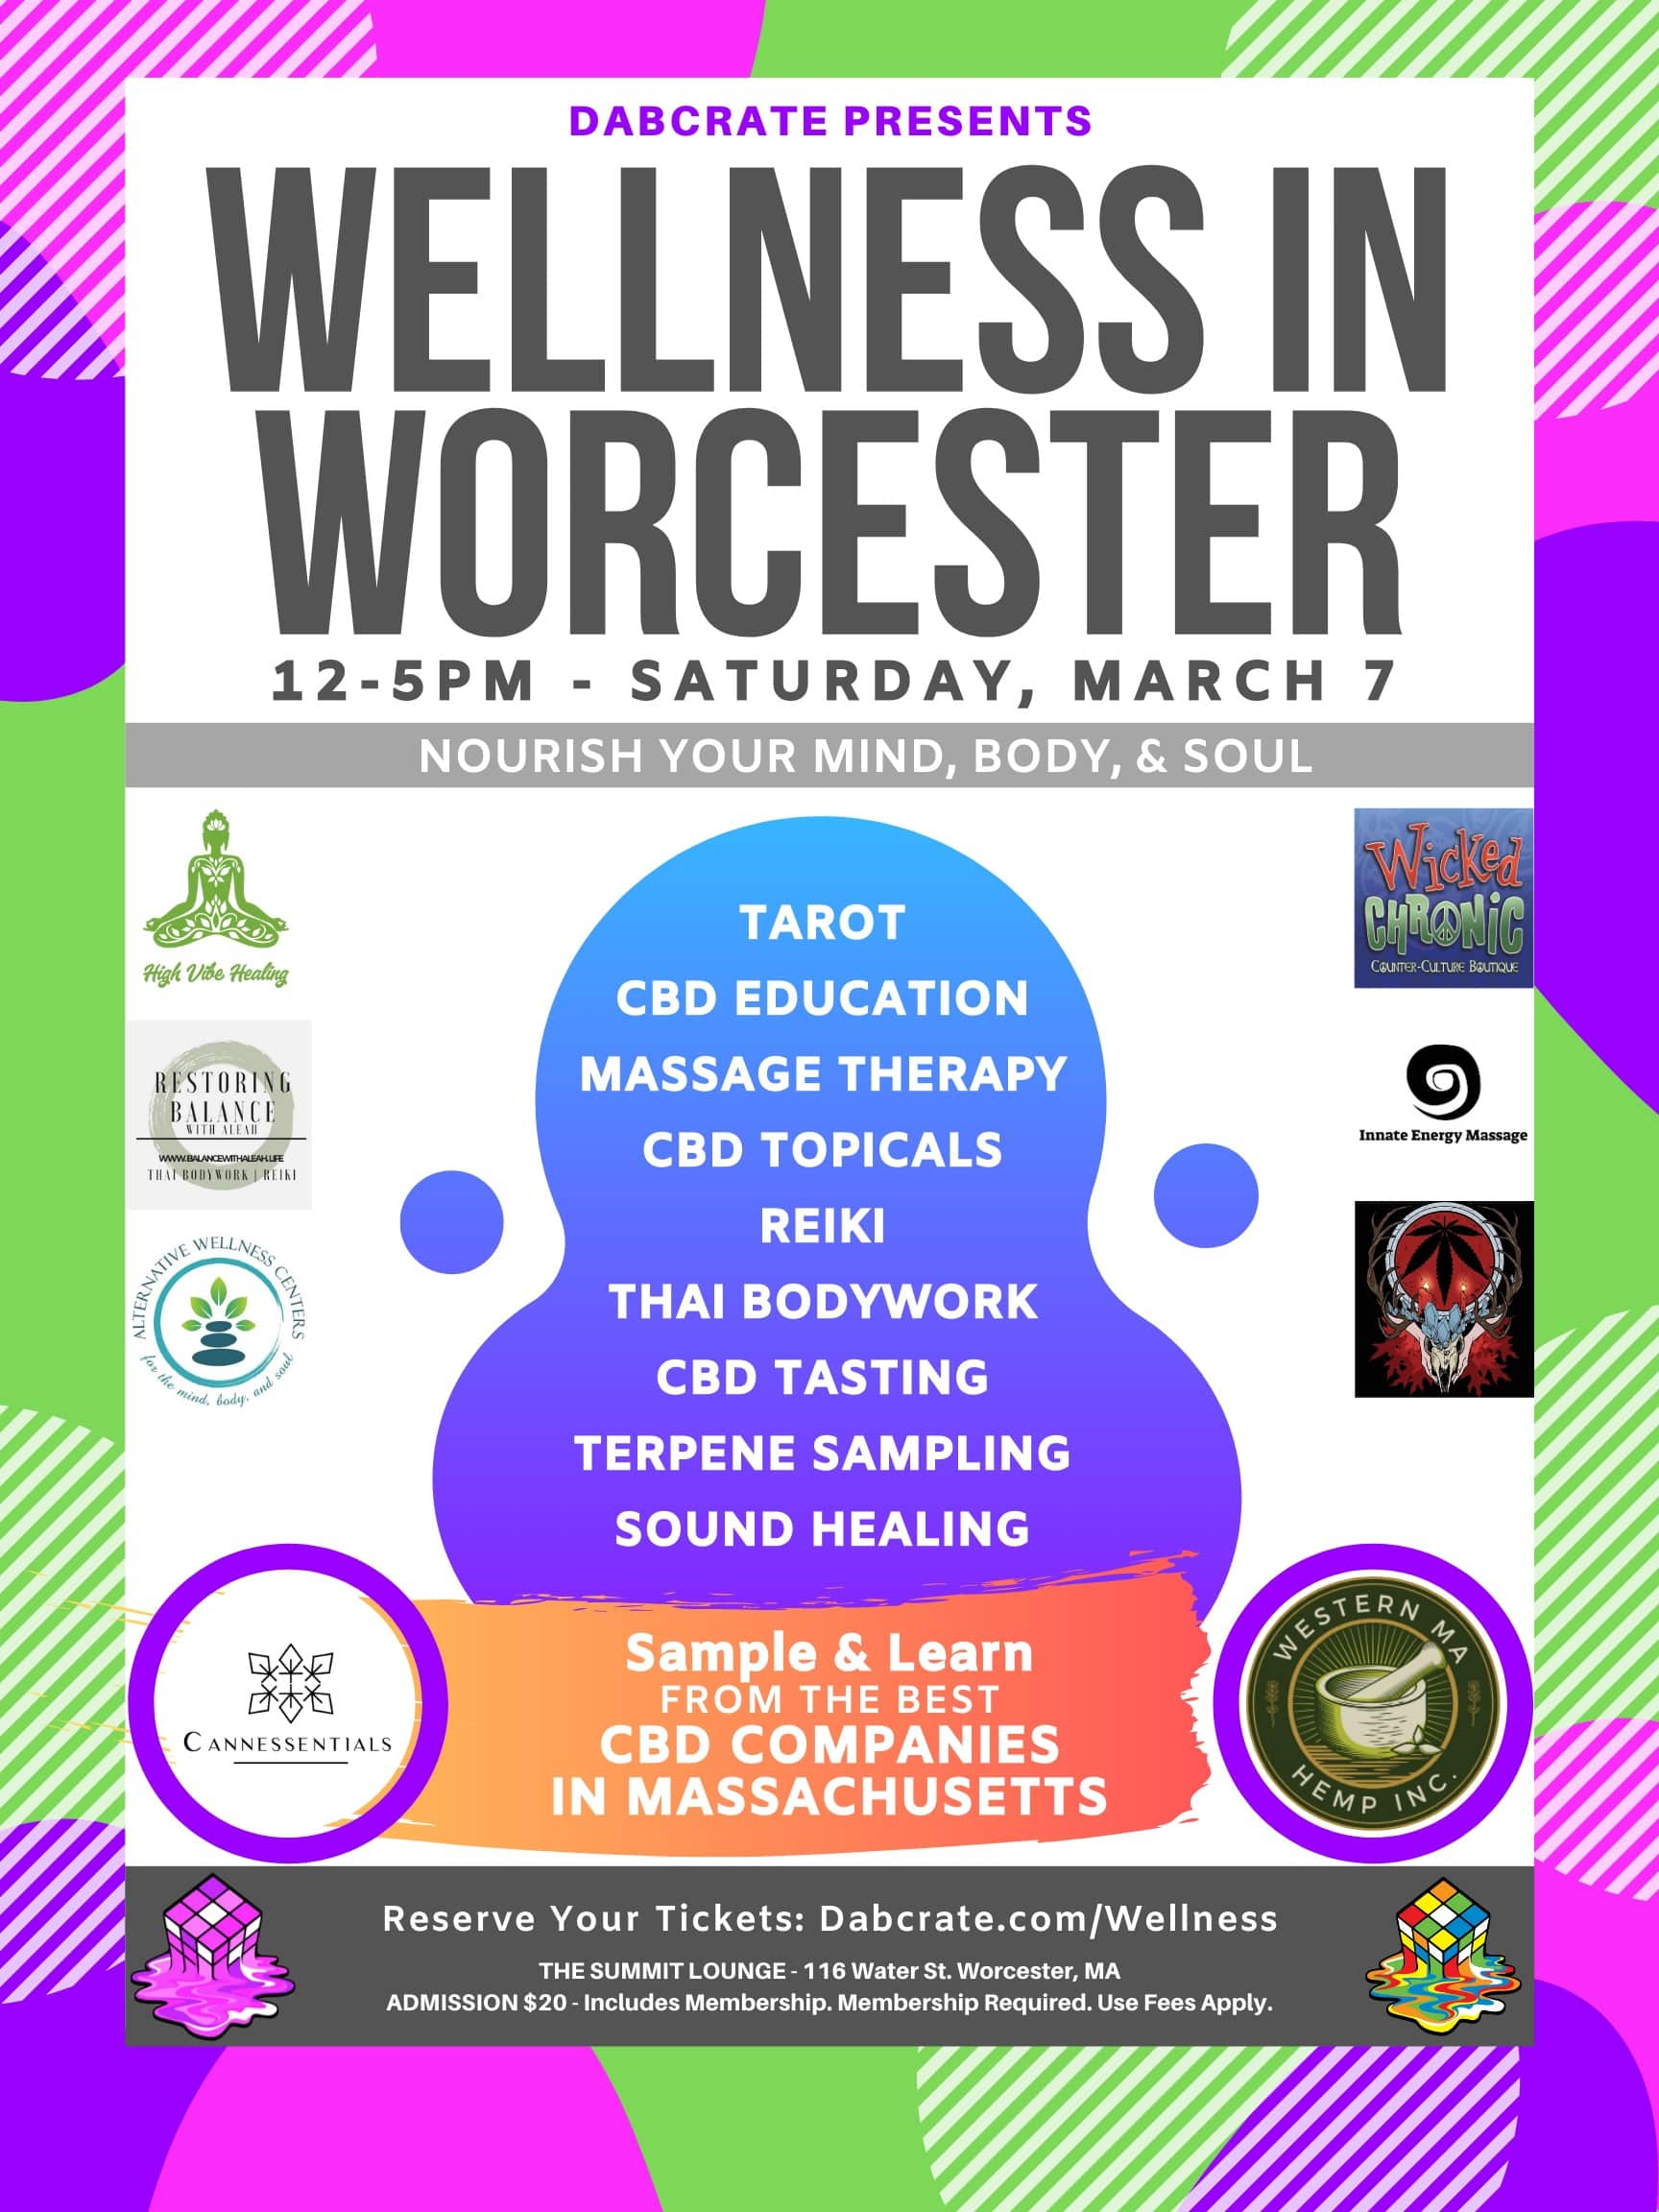 WELLNESS in WORCESTER!